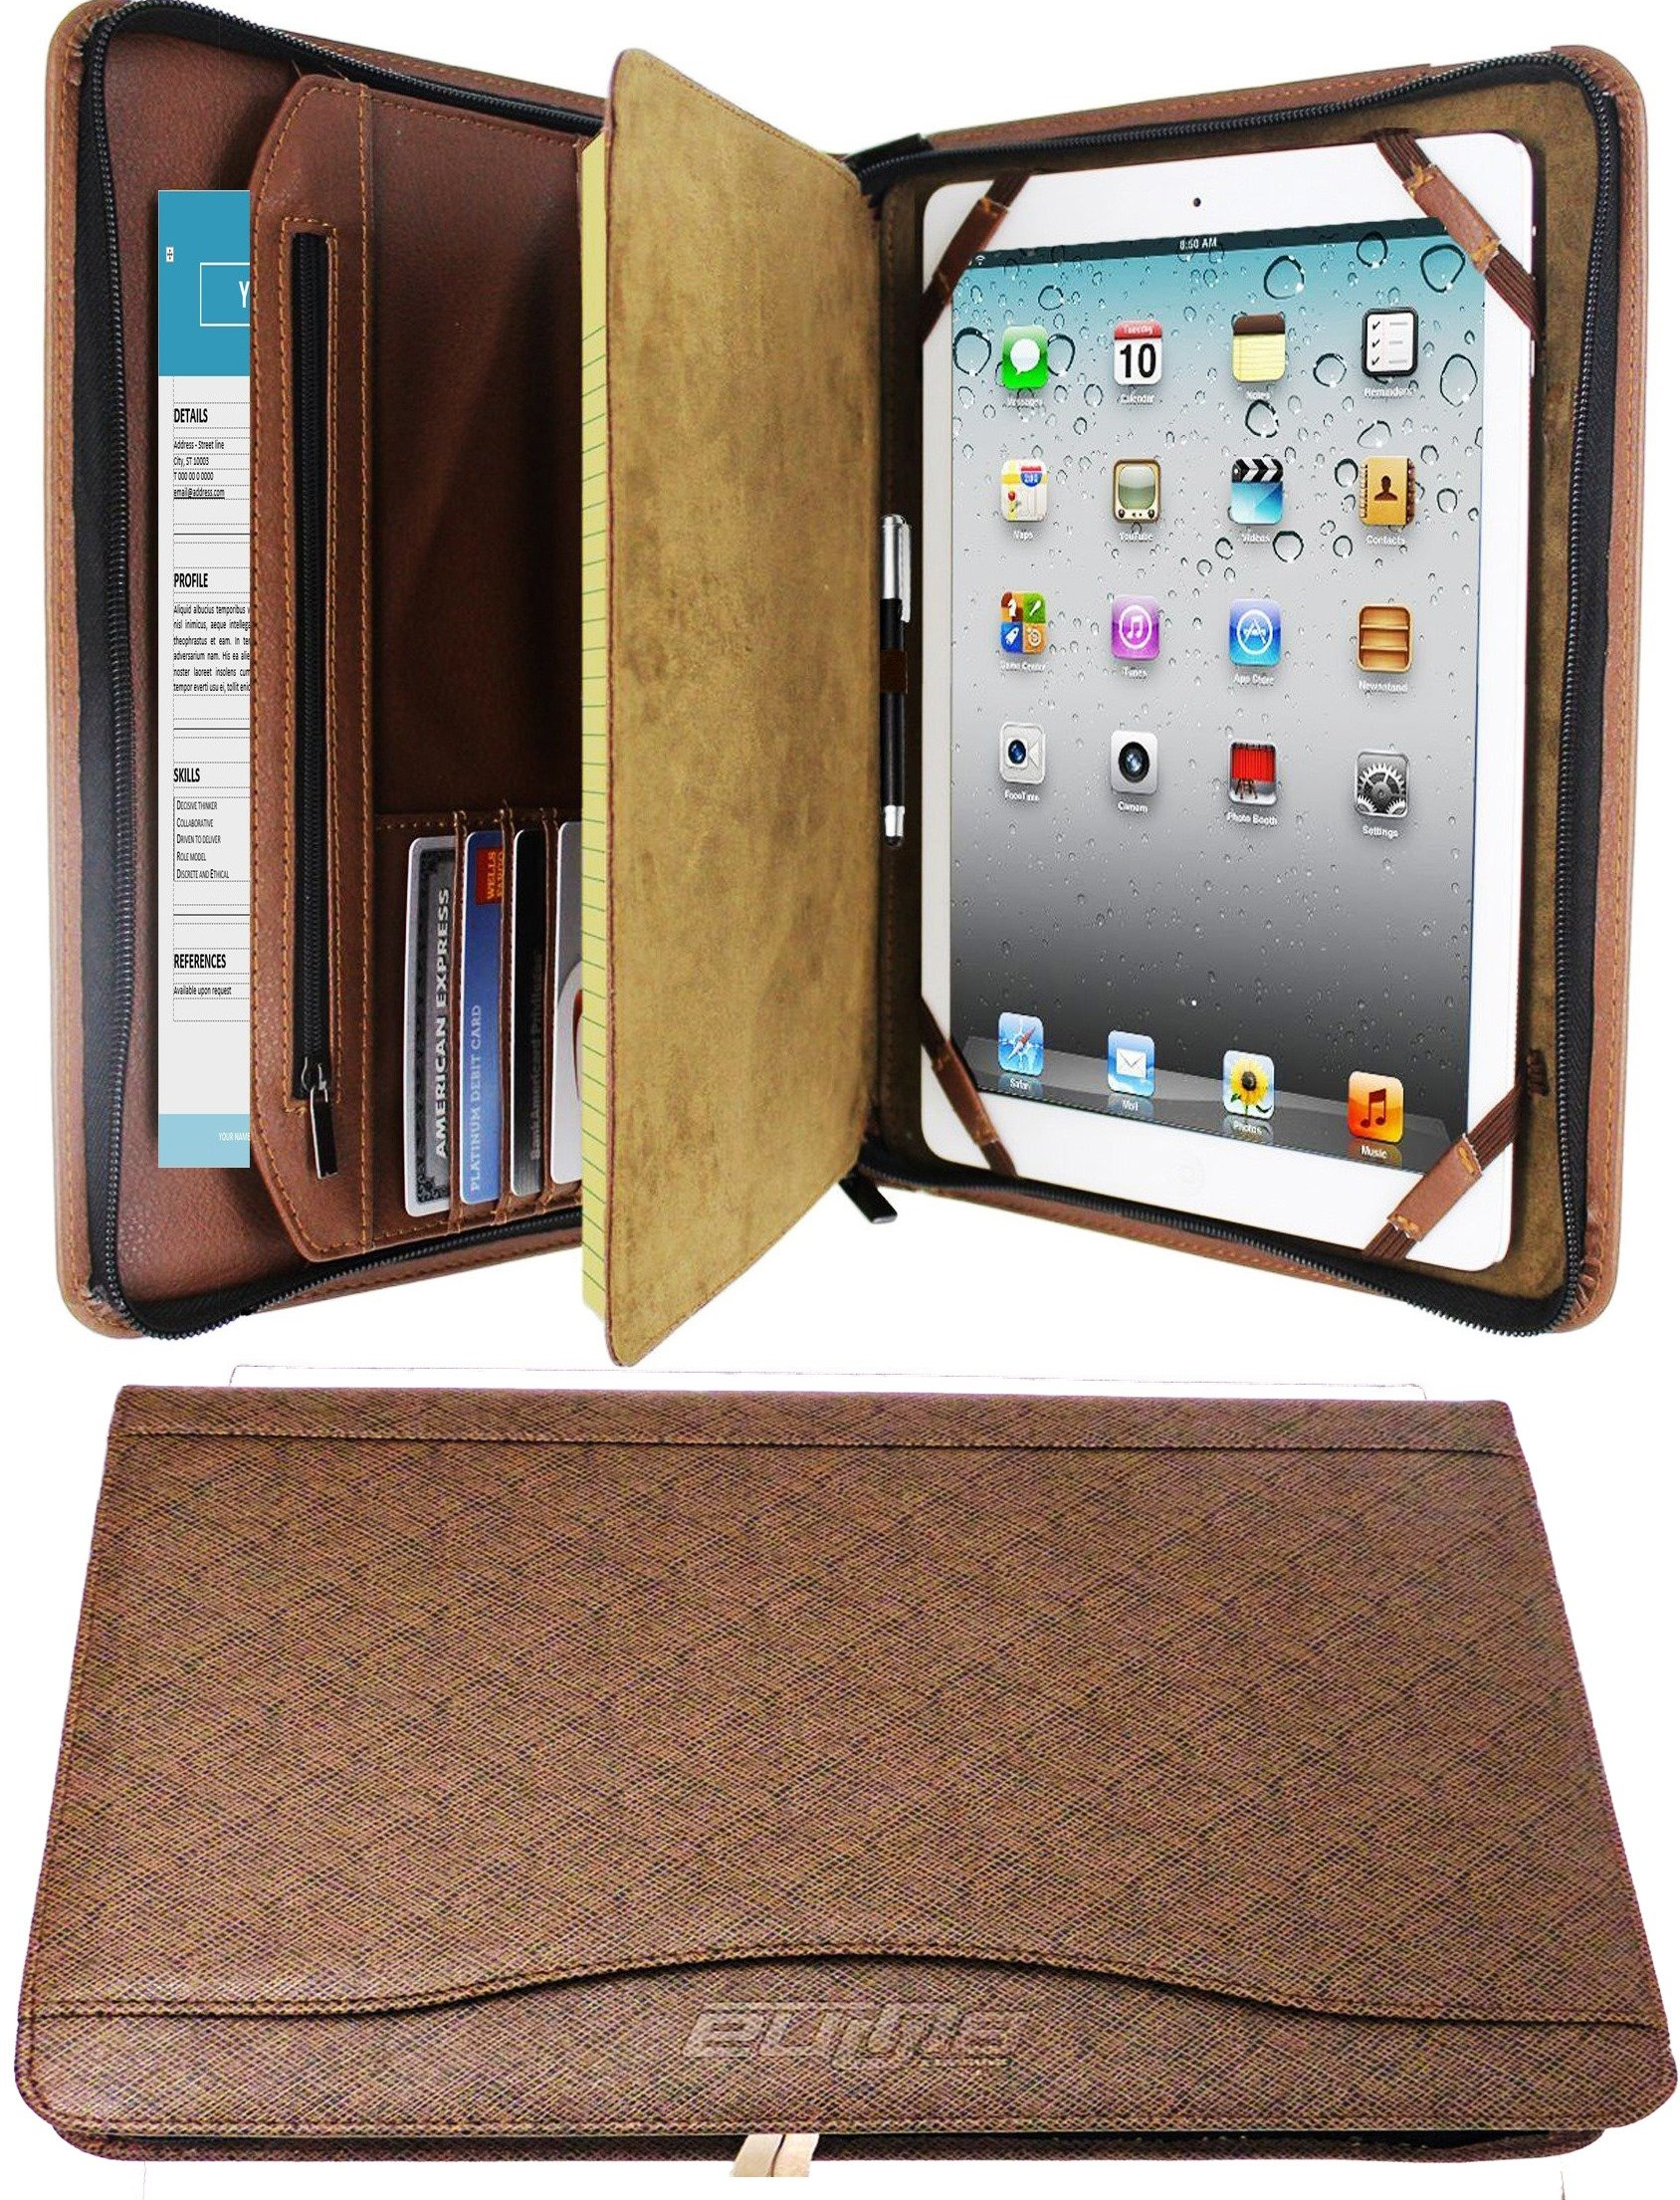 Zipper Binder Business Card Organizer Leather Padfolio iPad Tablet Sleeve Writing Pad Portfolio Folder Interview Conference Meeting Professional Executive Resume Legal Letter Documents Holder (Brown)